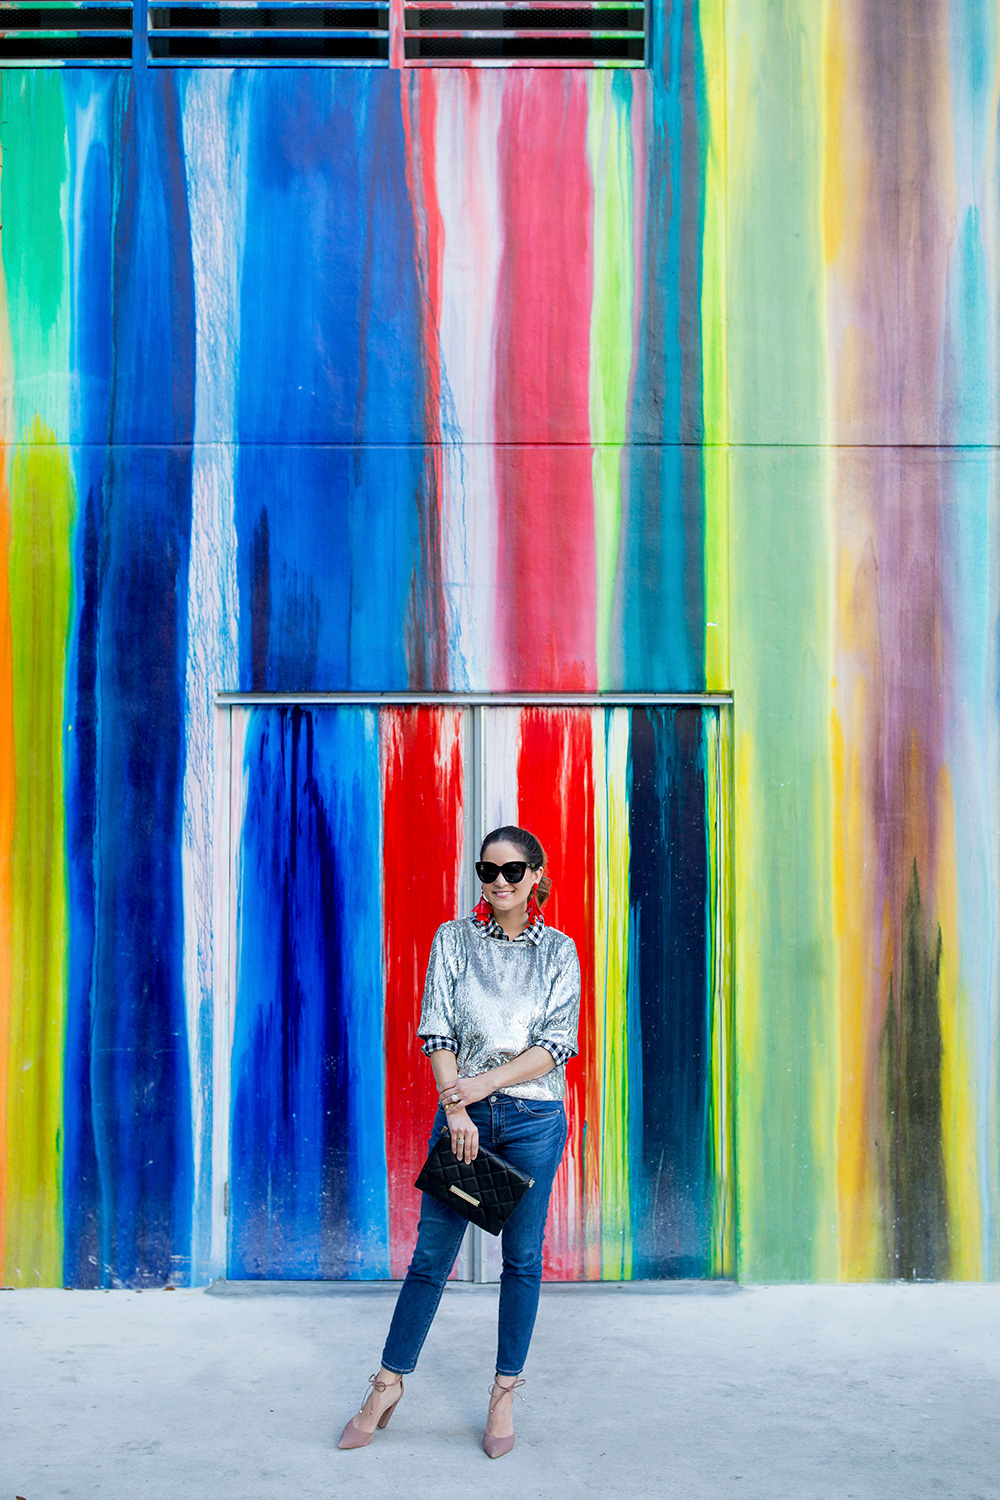 Miami Colorful Dripping Paint Mural